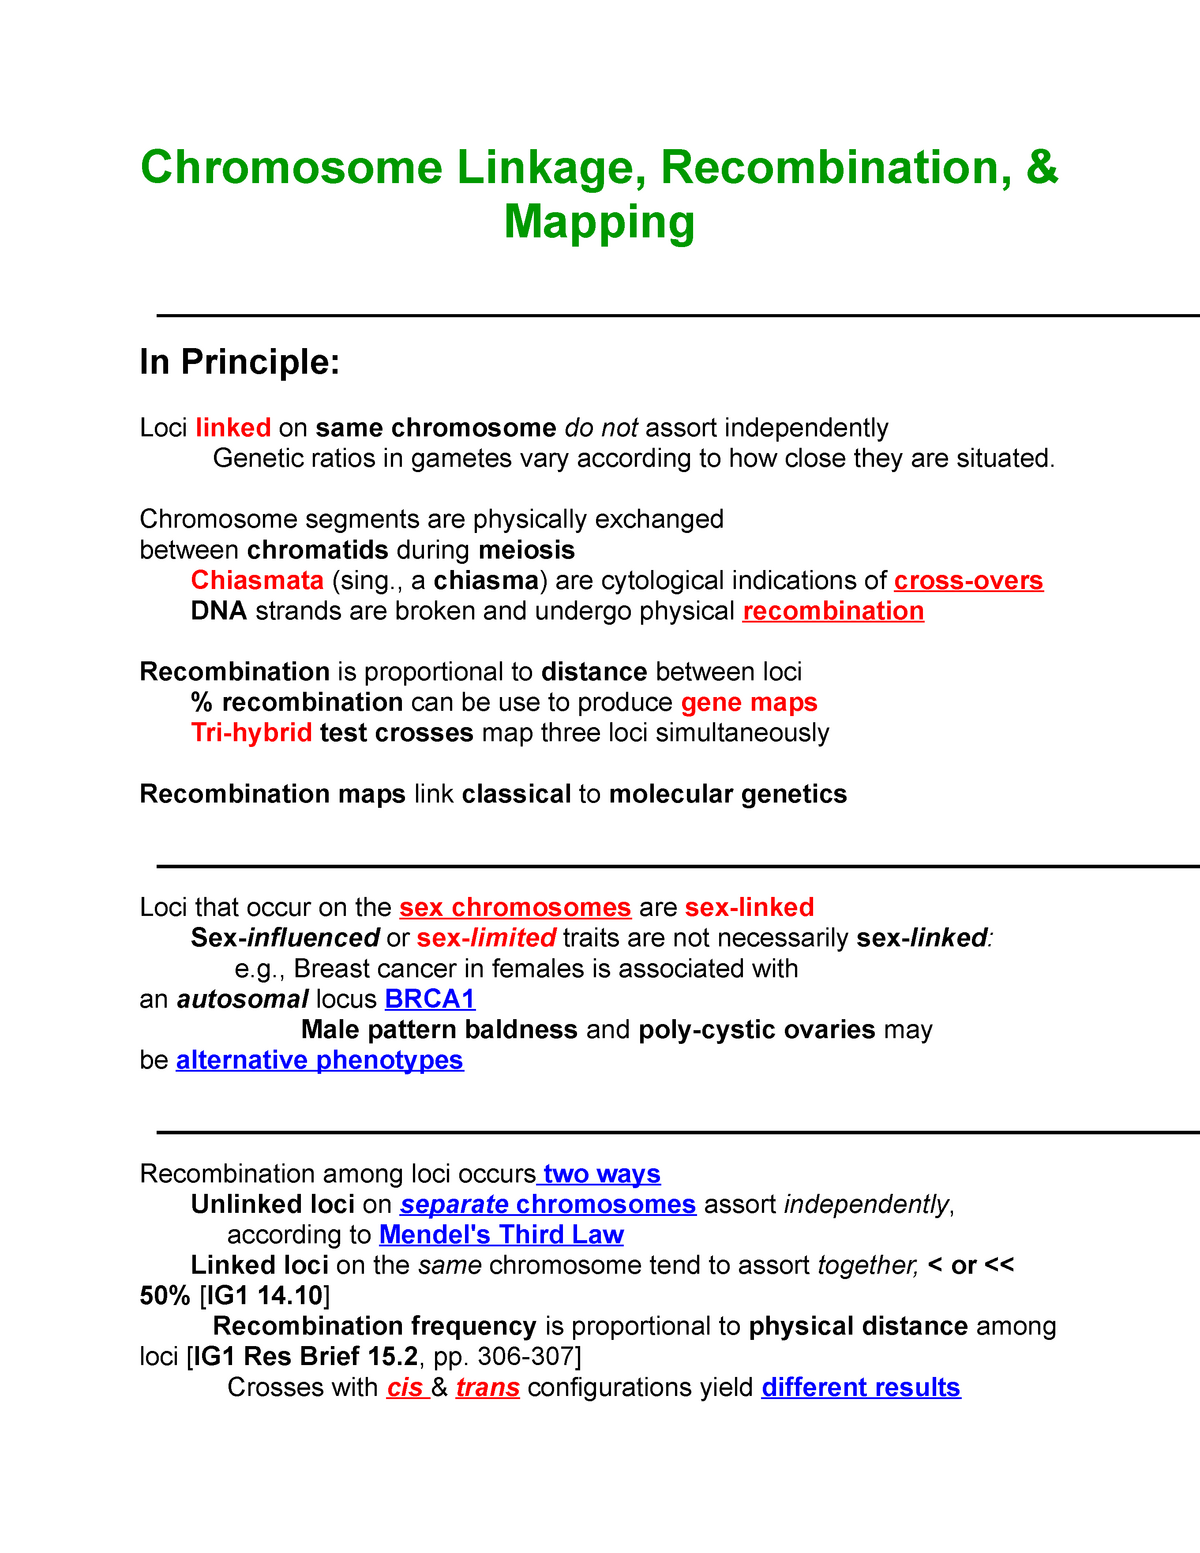 Chromosome Linkage, Recombination, & Mapping - lecture notes ... on heart map distance, genetic distance nei, cavalli-sforza genetic distance, linkage maps distance, genetic distance race, world map distance, genetic distance 1,